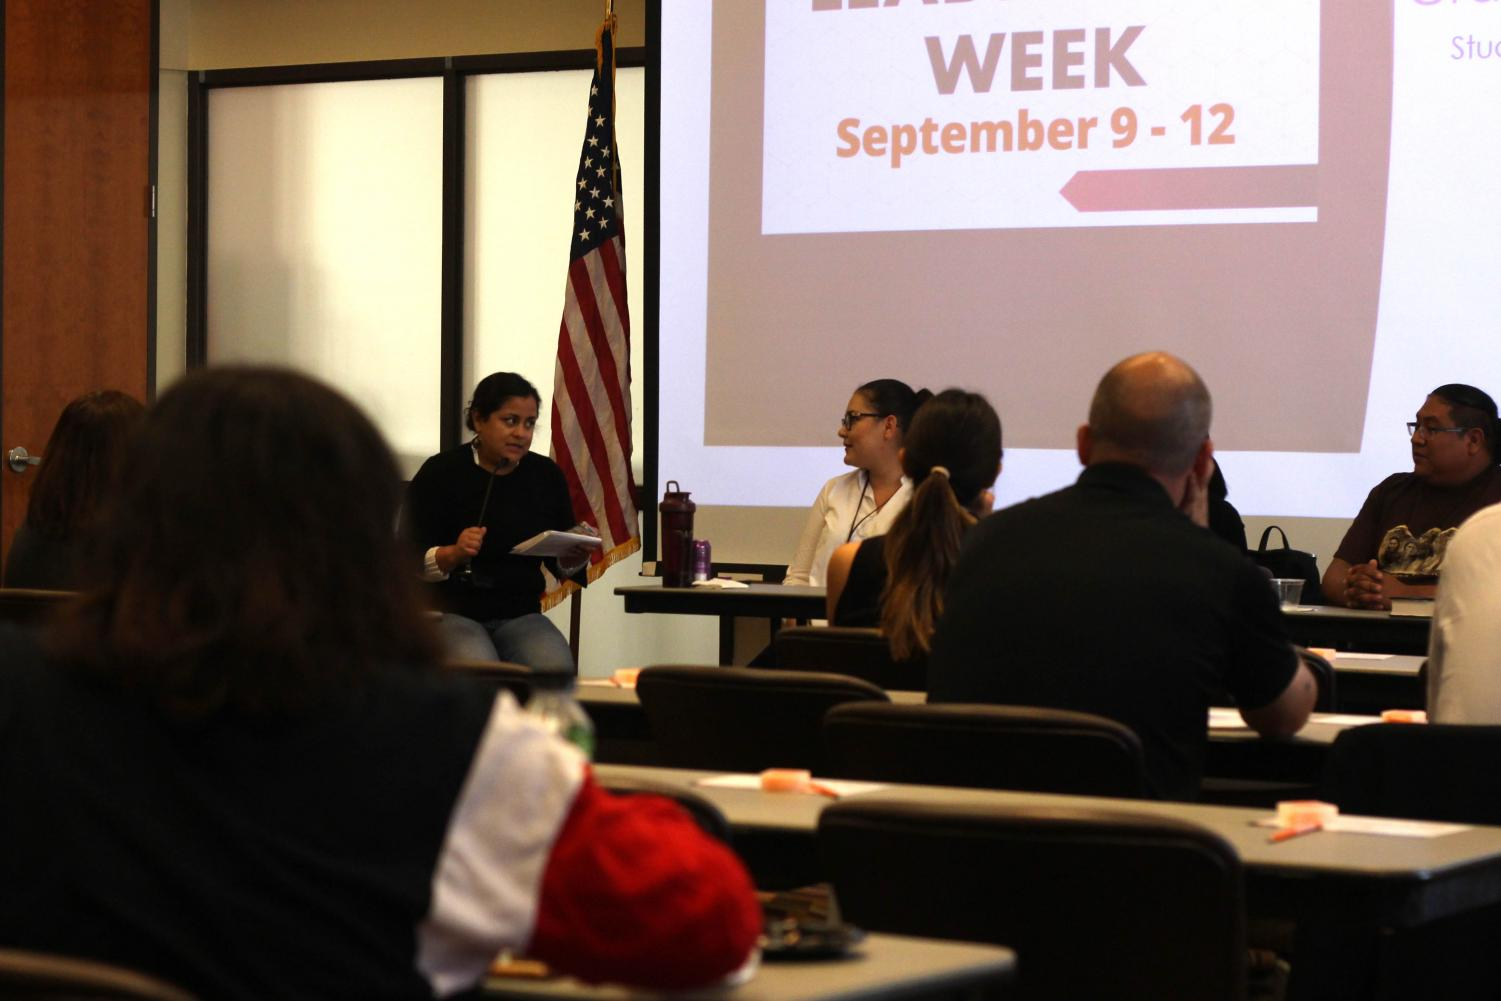 Graduate students listened to multiple speakers at the Graduate Leadership Panel at El Paso Gas Conference Center Tuesday Sept. 10, 2019.